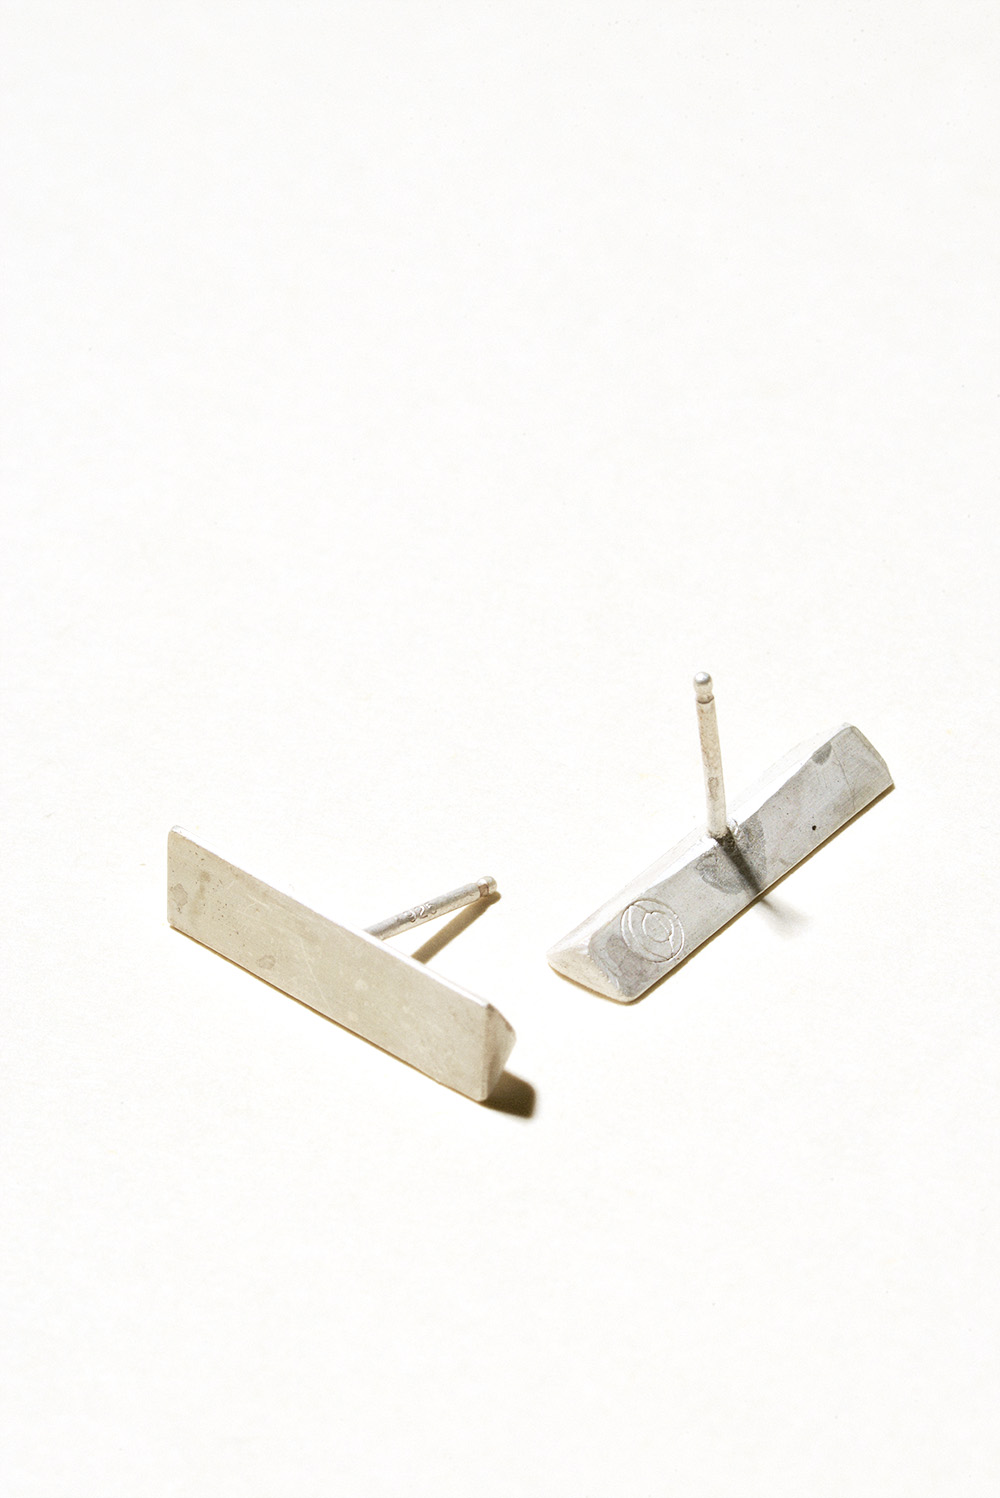 Short Prism Earrings - 20mm x 5mmSterling Silver, Raw FinishHand Smithed$50